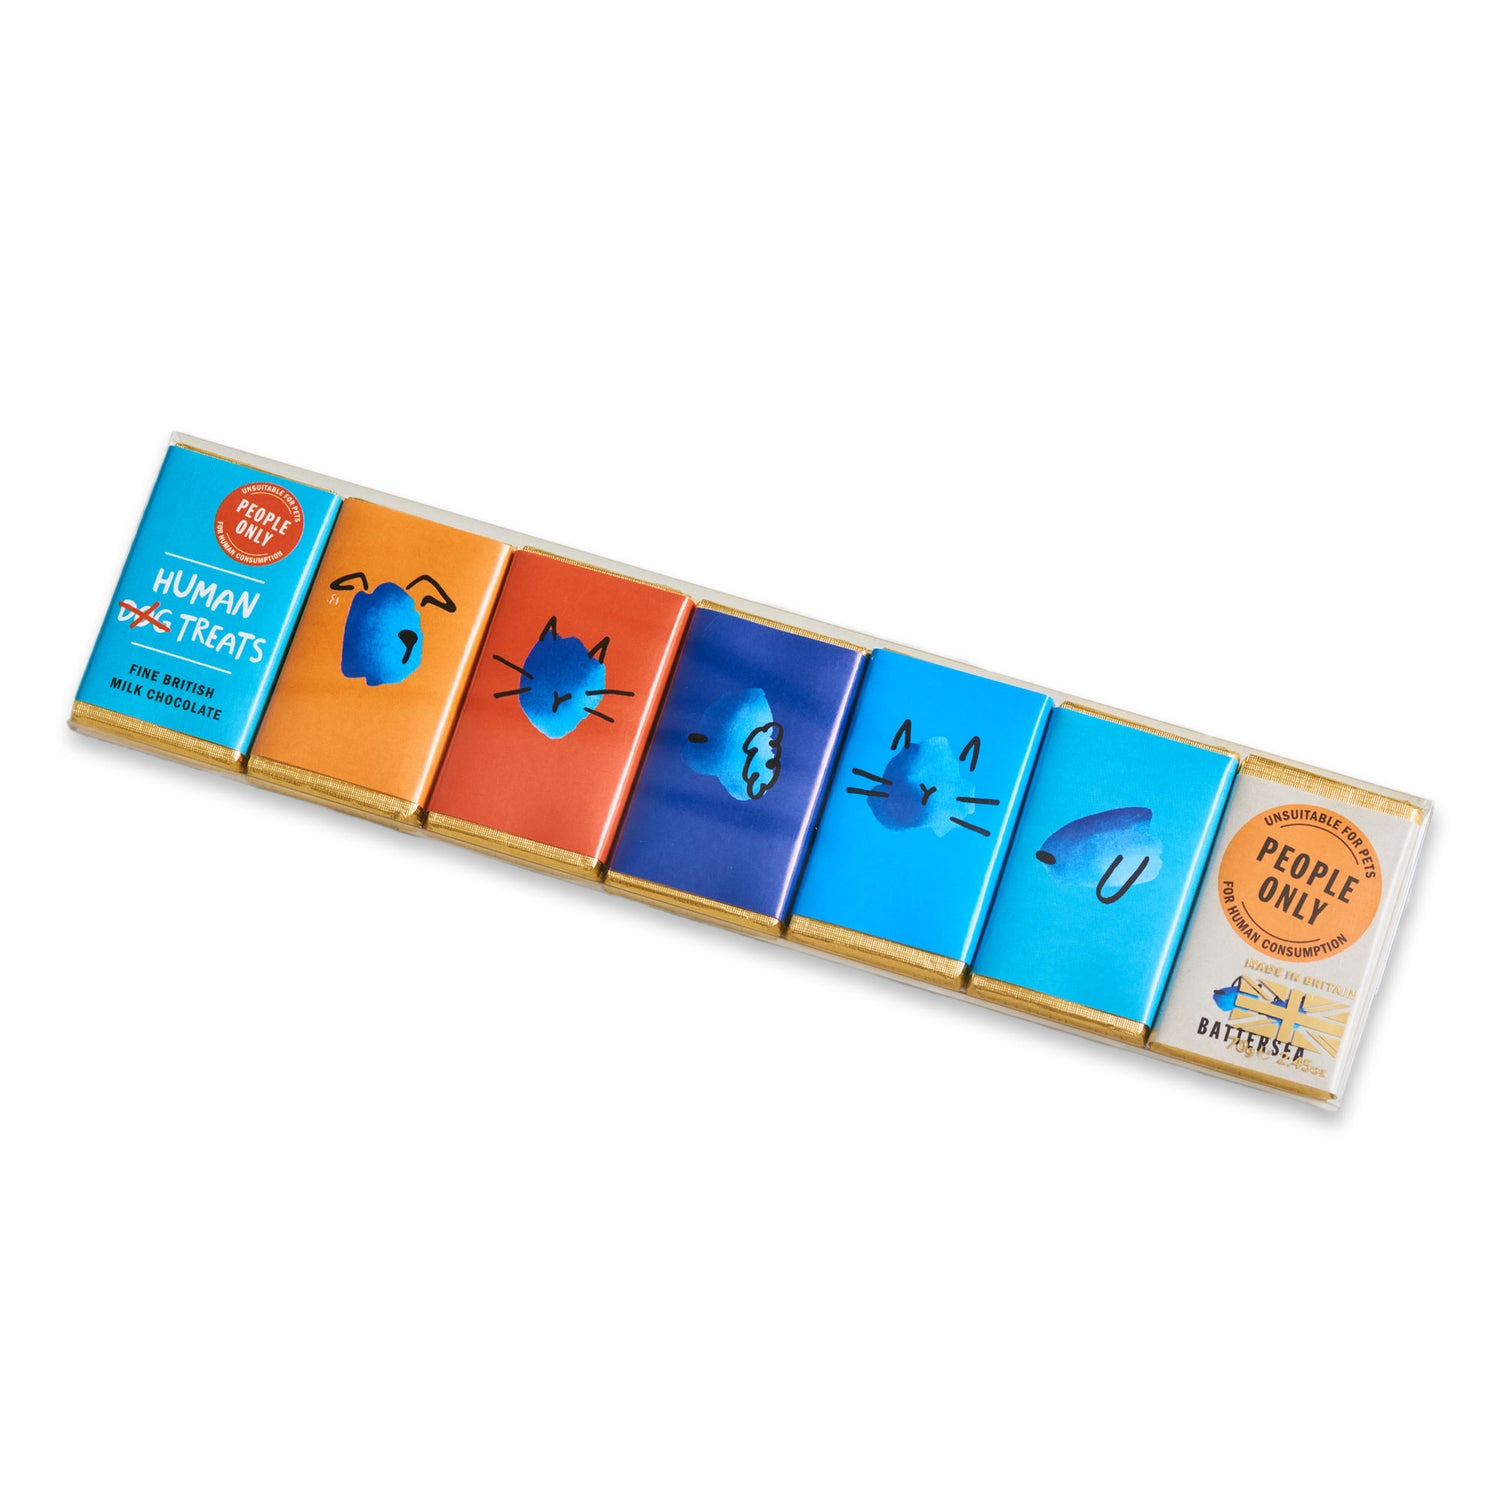 Human Chocolates 7 Pack - Milk Chocolate